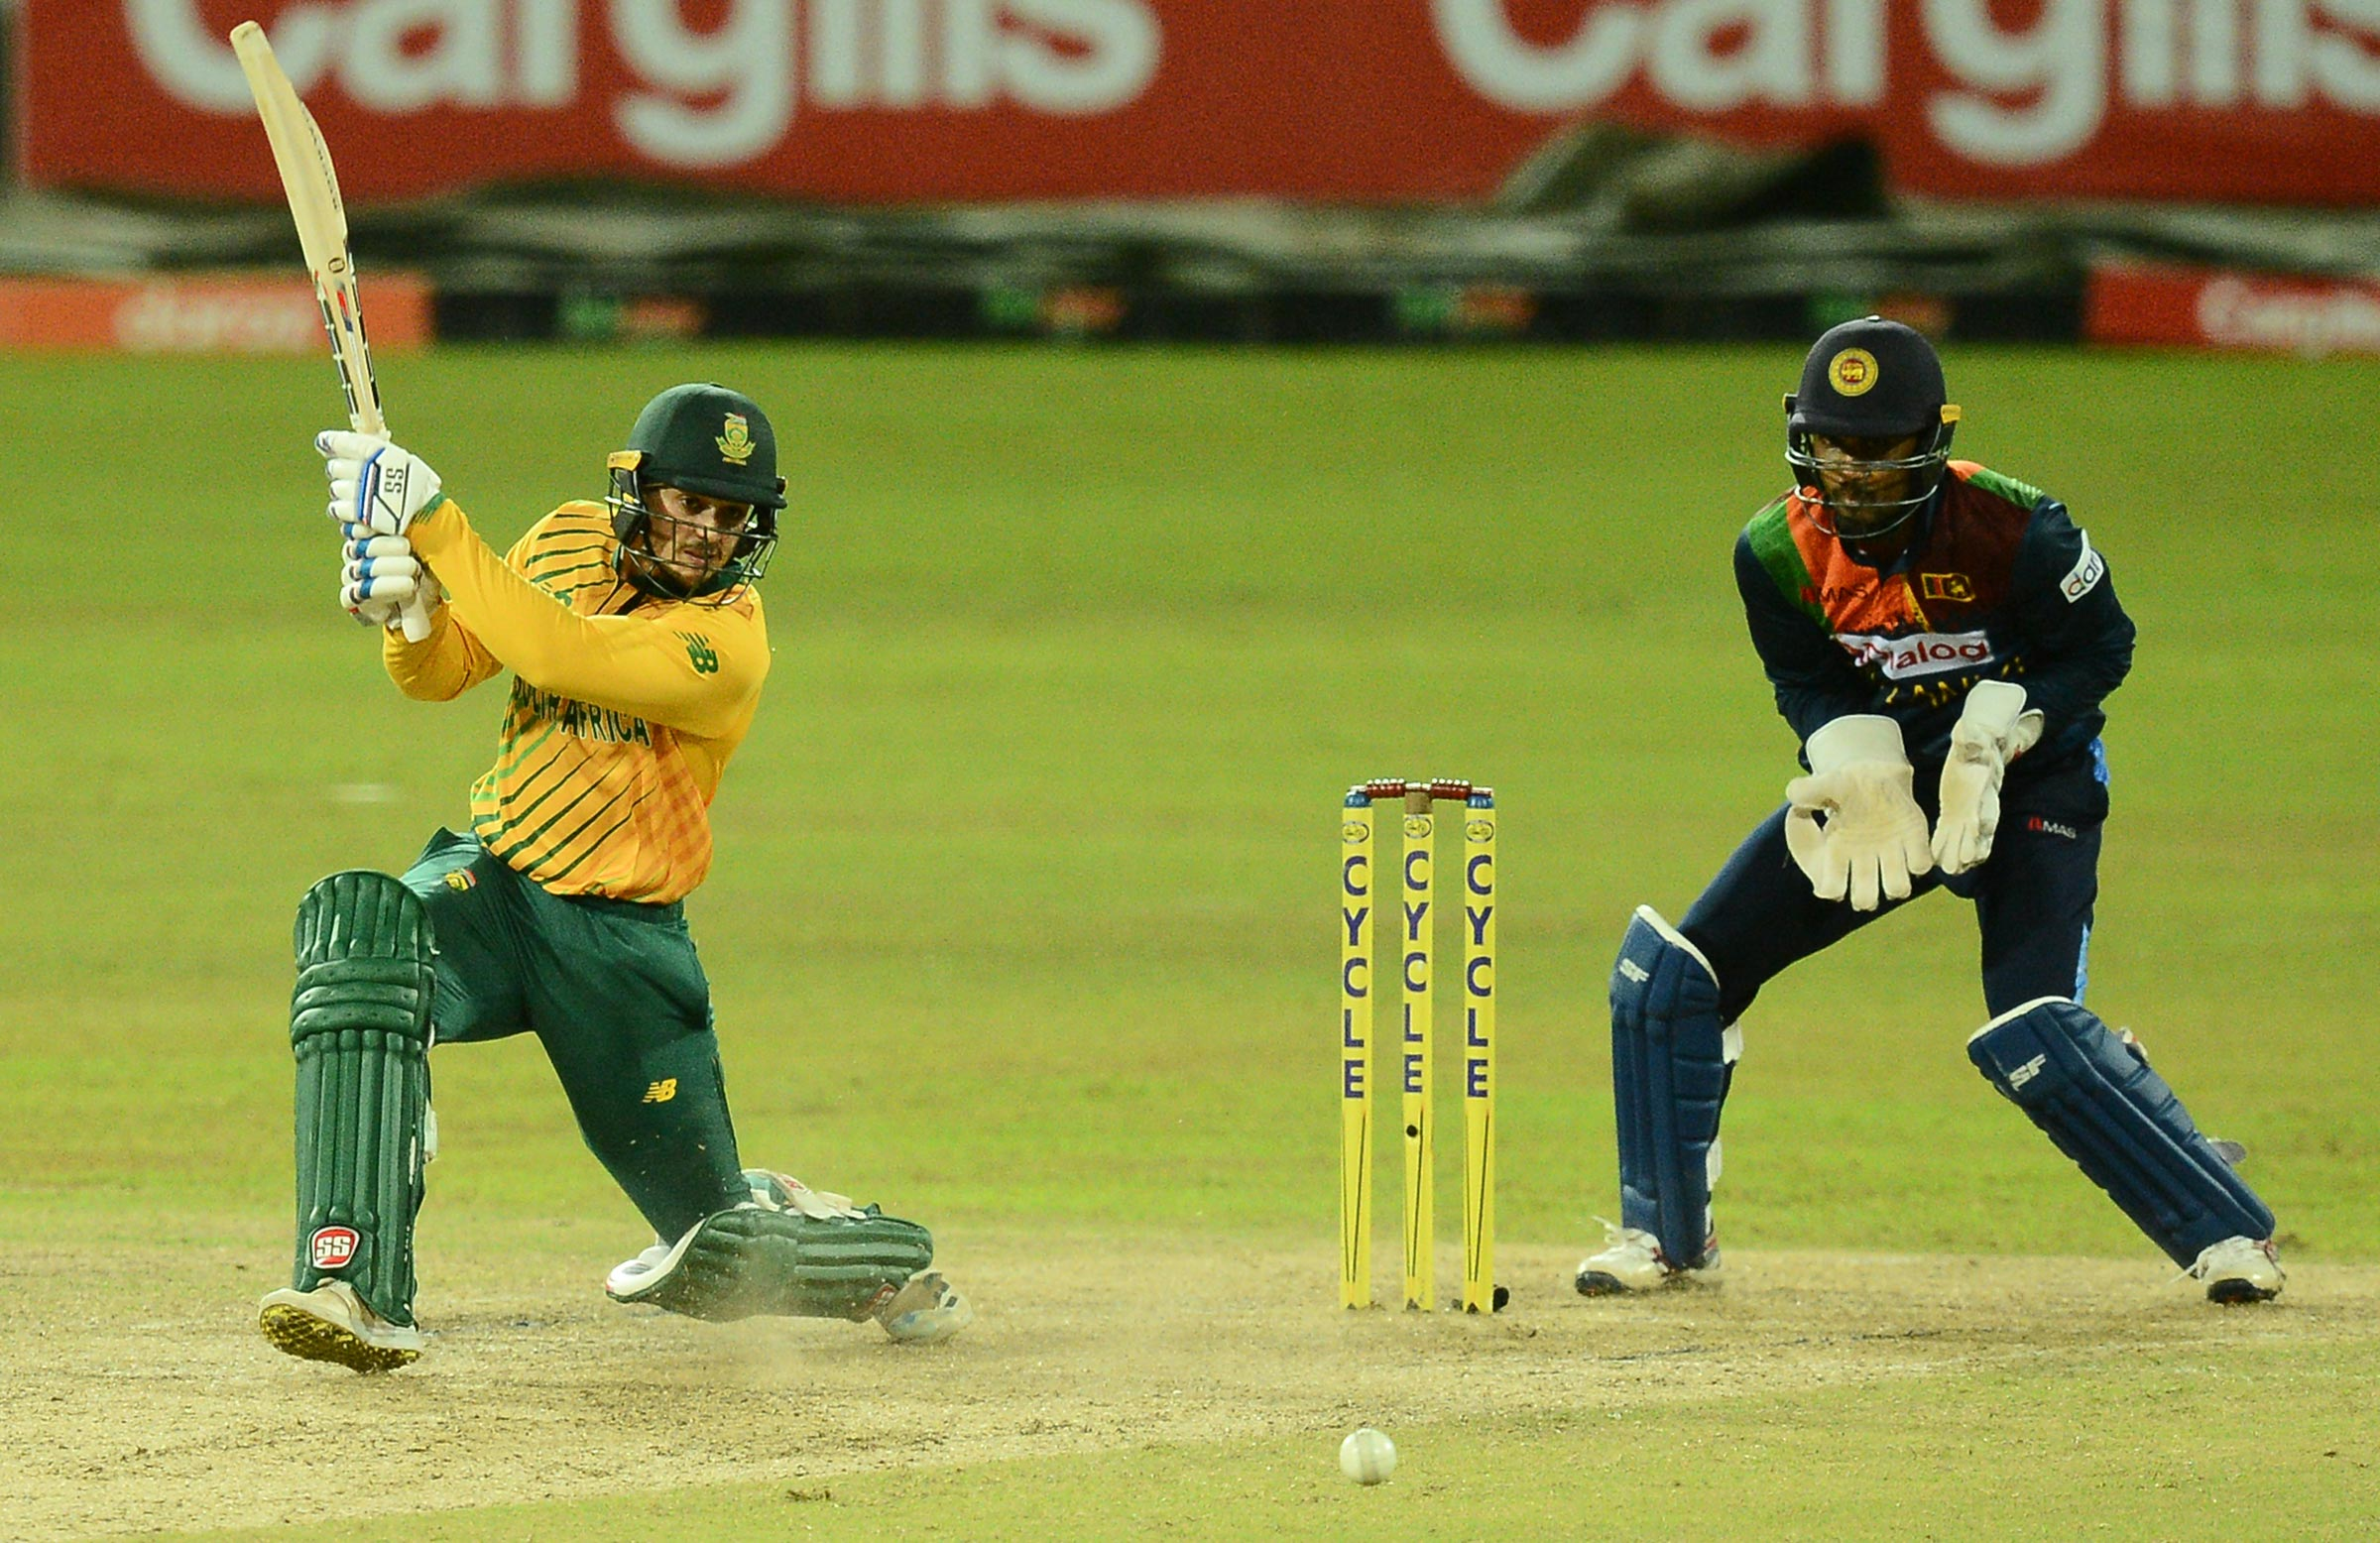 De Kock steered the Proteas home in Colombo /// Getty